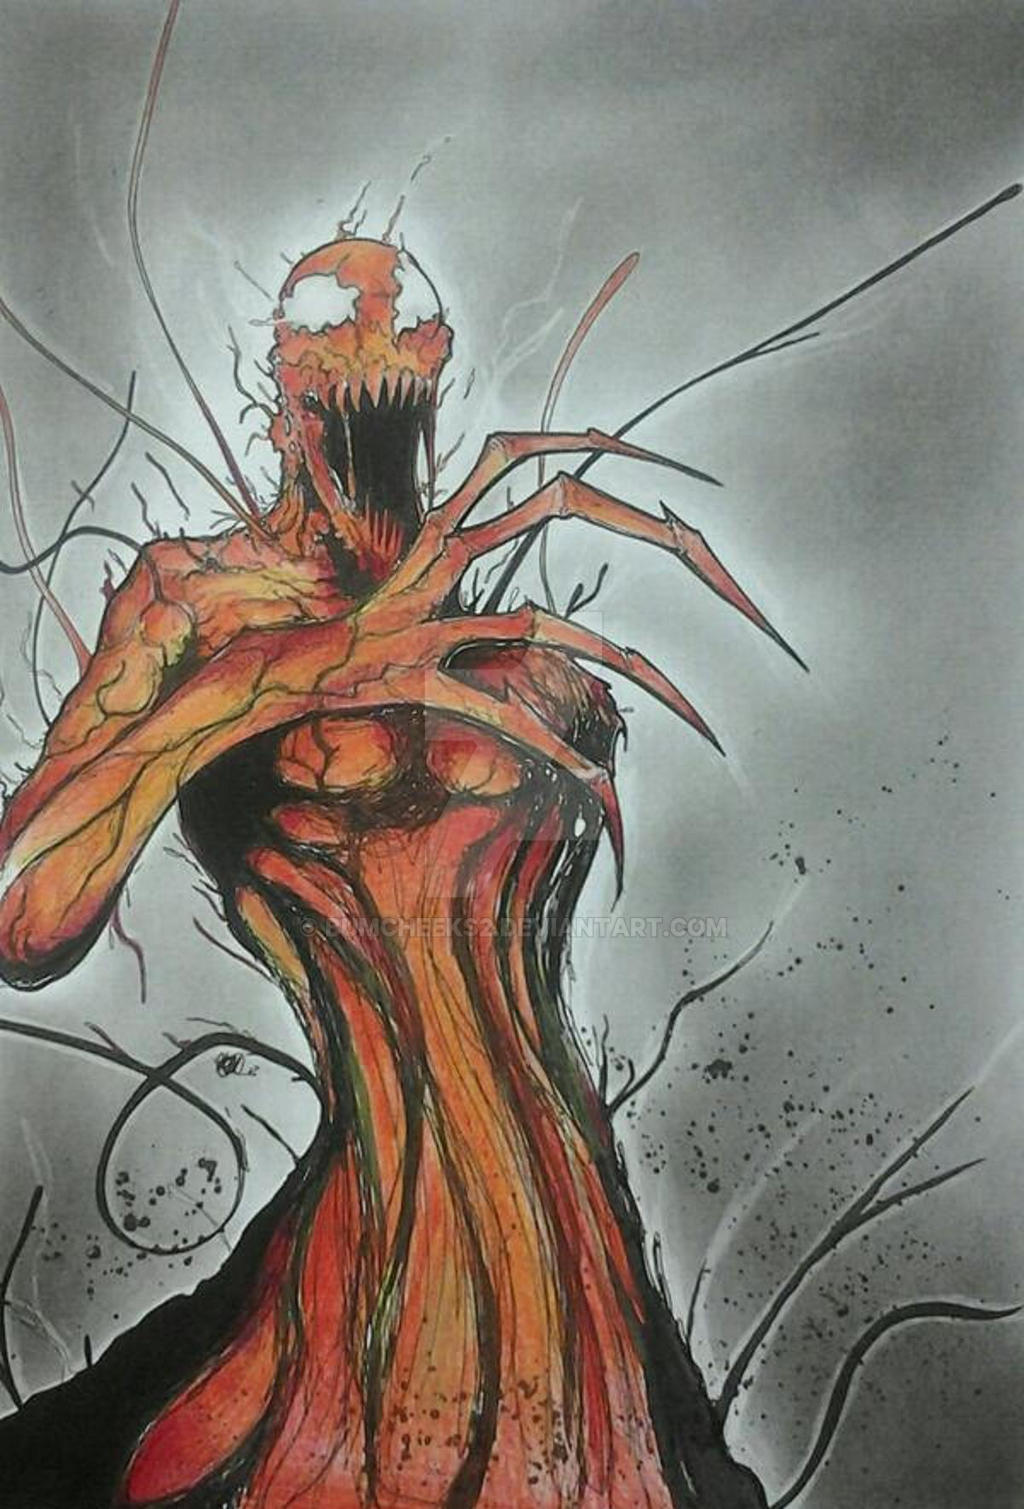 MARVEL'S CARNAGE by BUMCHEEKS2